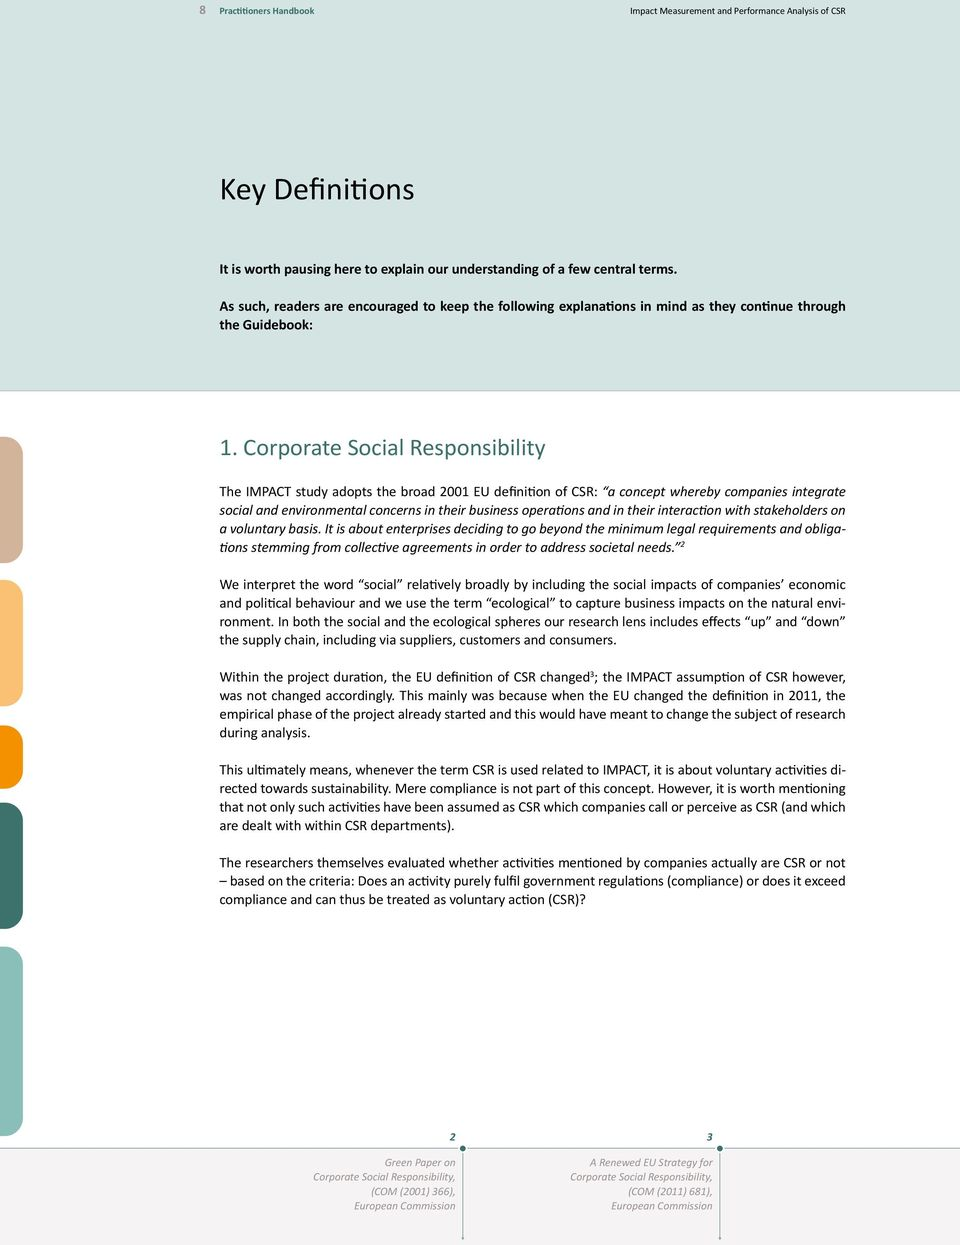 Corporate Social Responsibility The IMPACT study adopts the broad 2001 EU definition of CSR: a concept whereby companies integrate social and environmental concerns in their business operations and